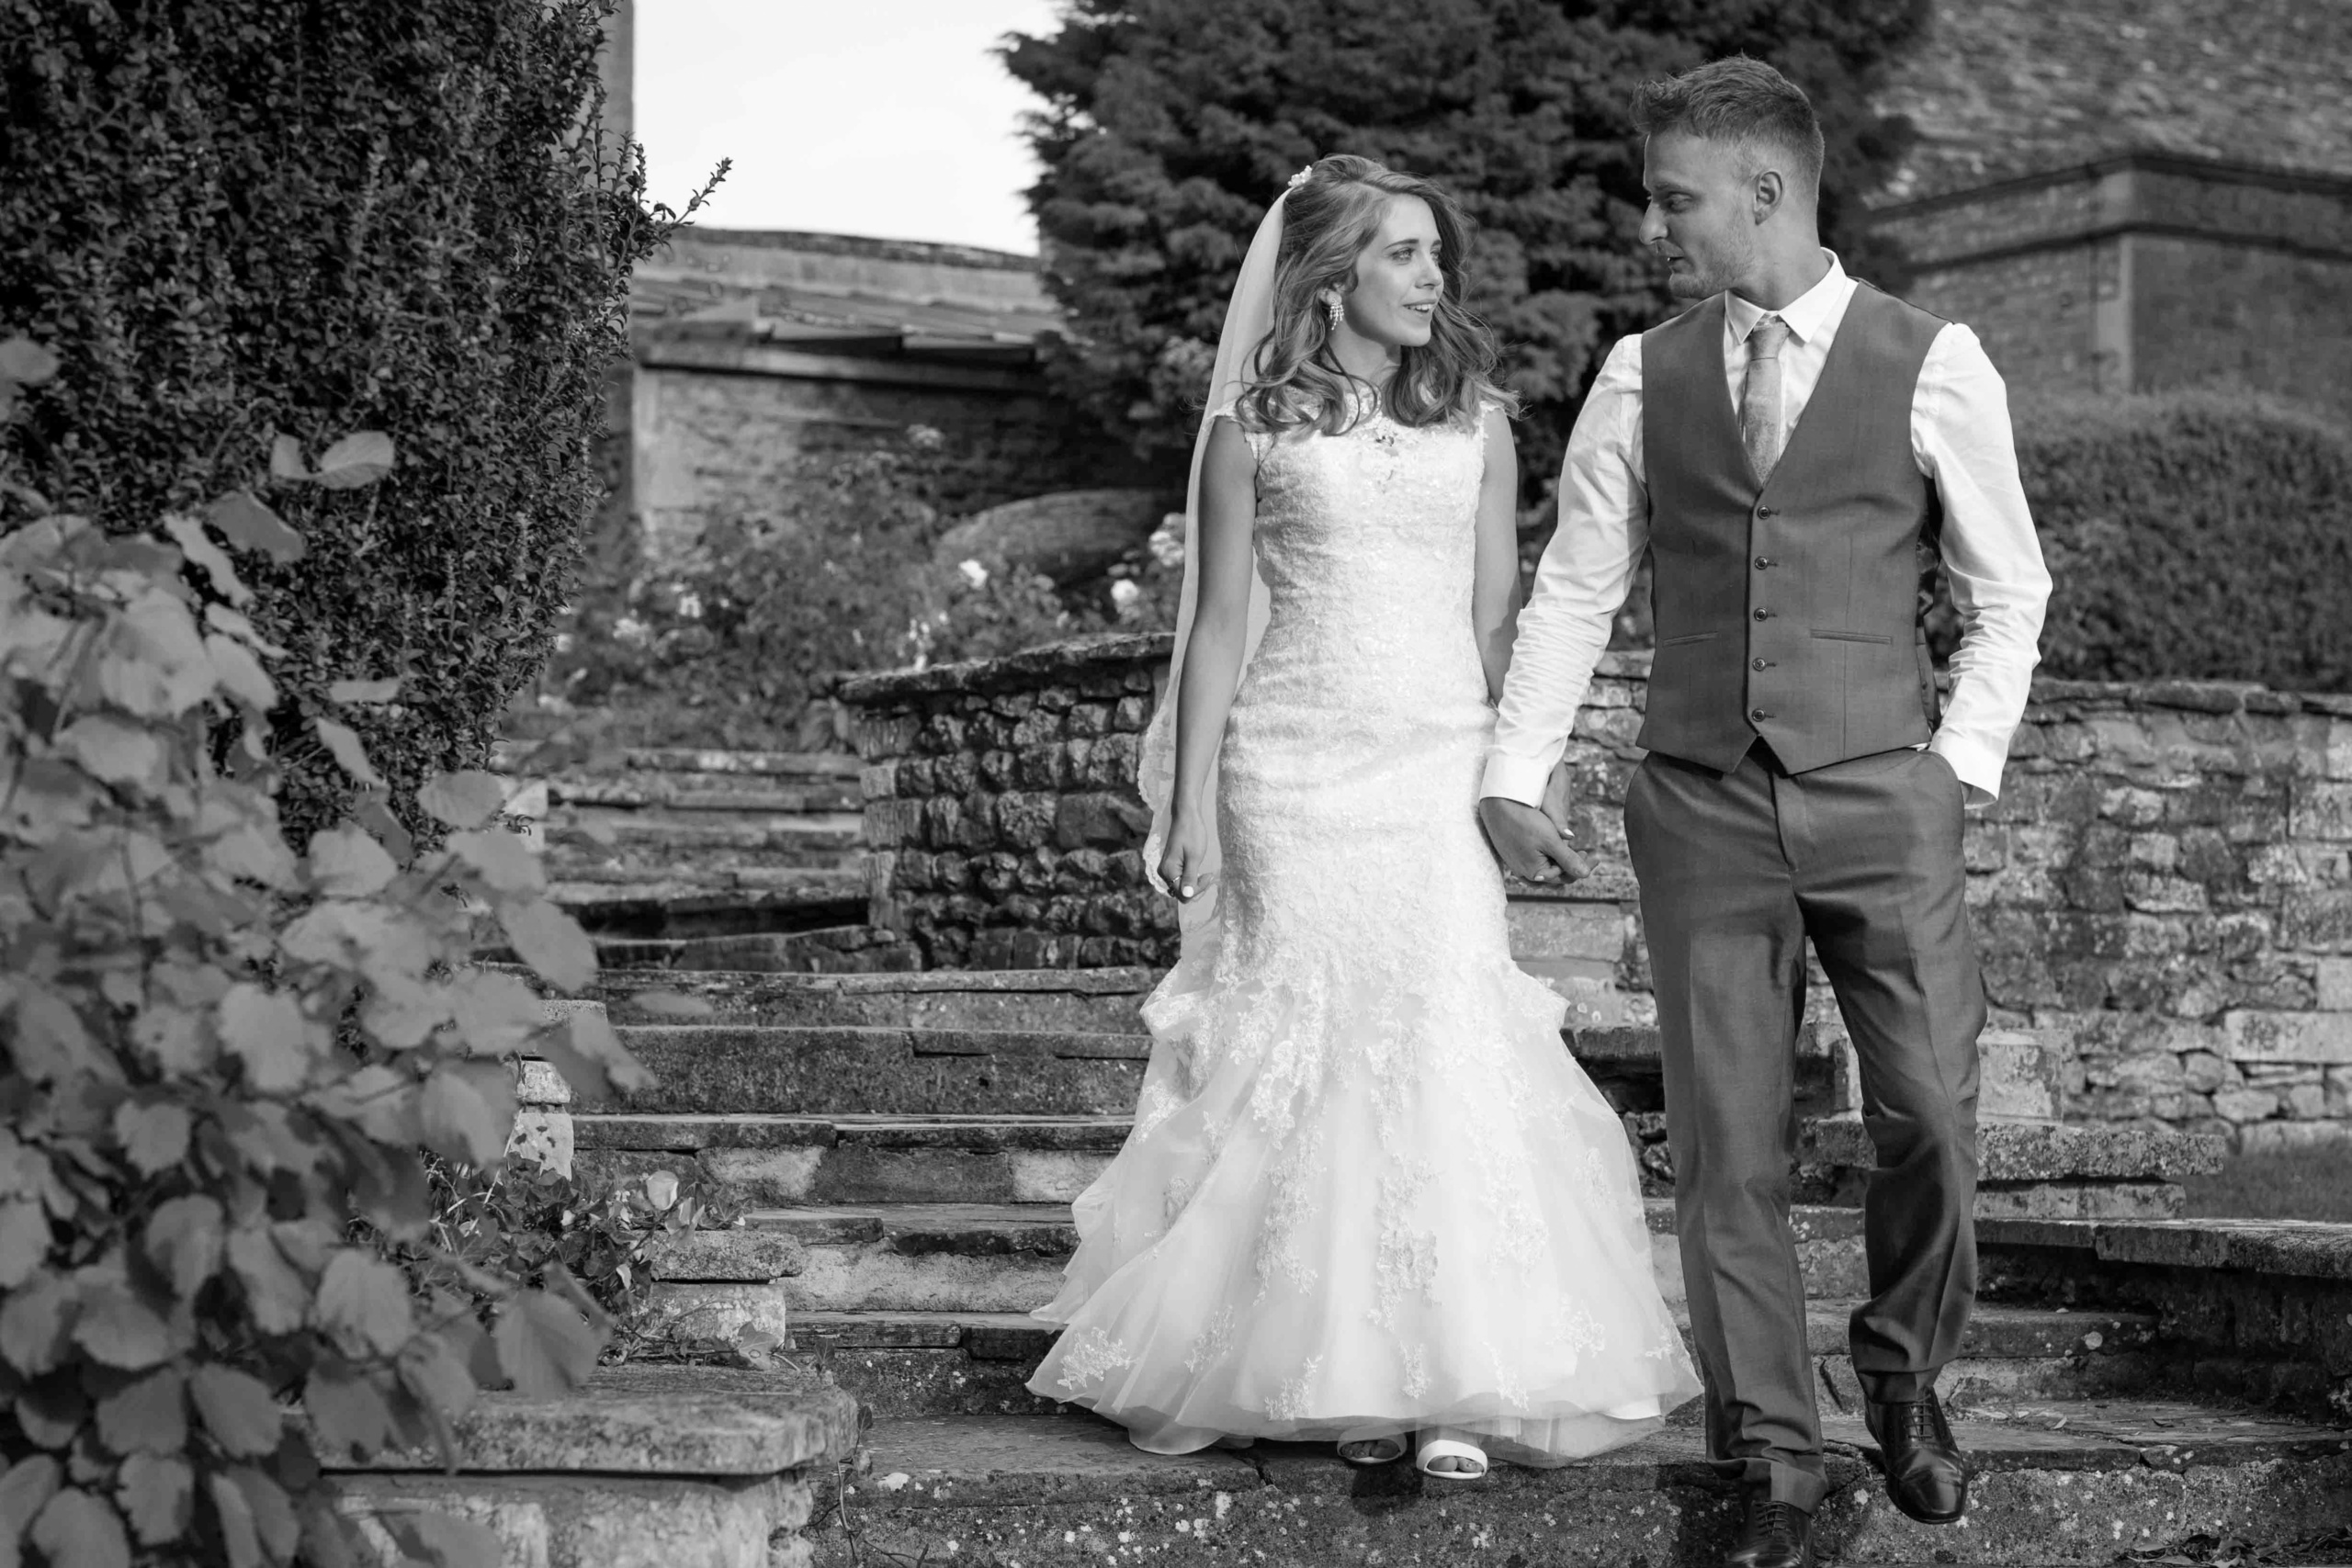 Stanton House Hotel, Wiltshire, Wedding Photography, Black and White, in grounds, Bride and Groom walking down stone steps holding hands and looking into each others eyes